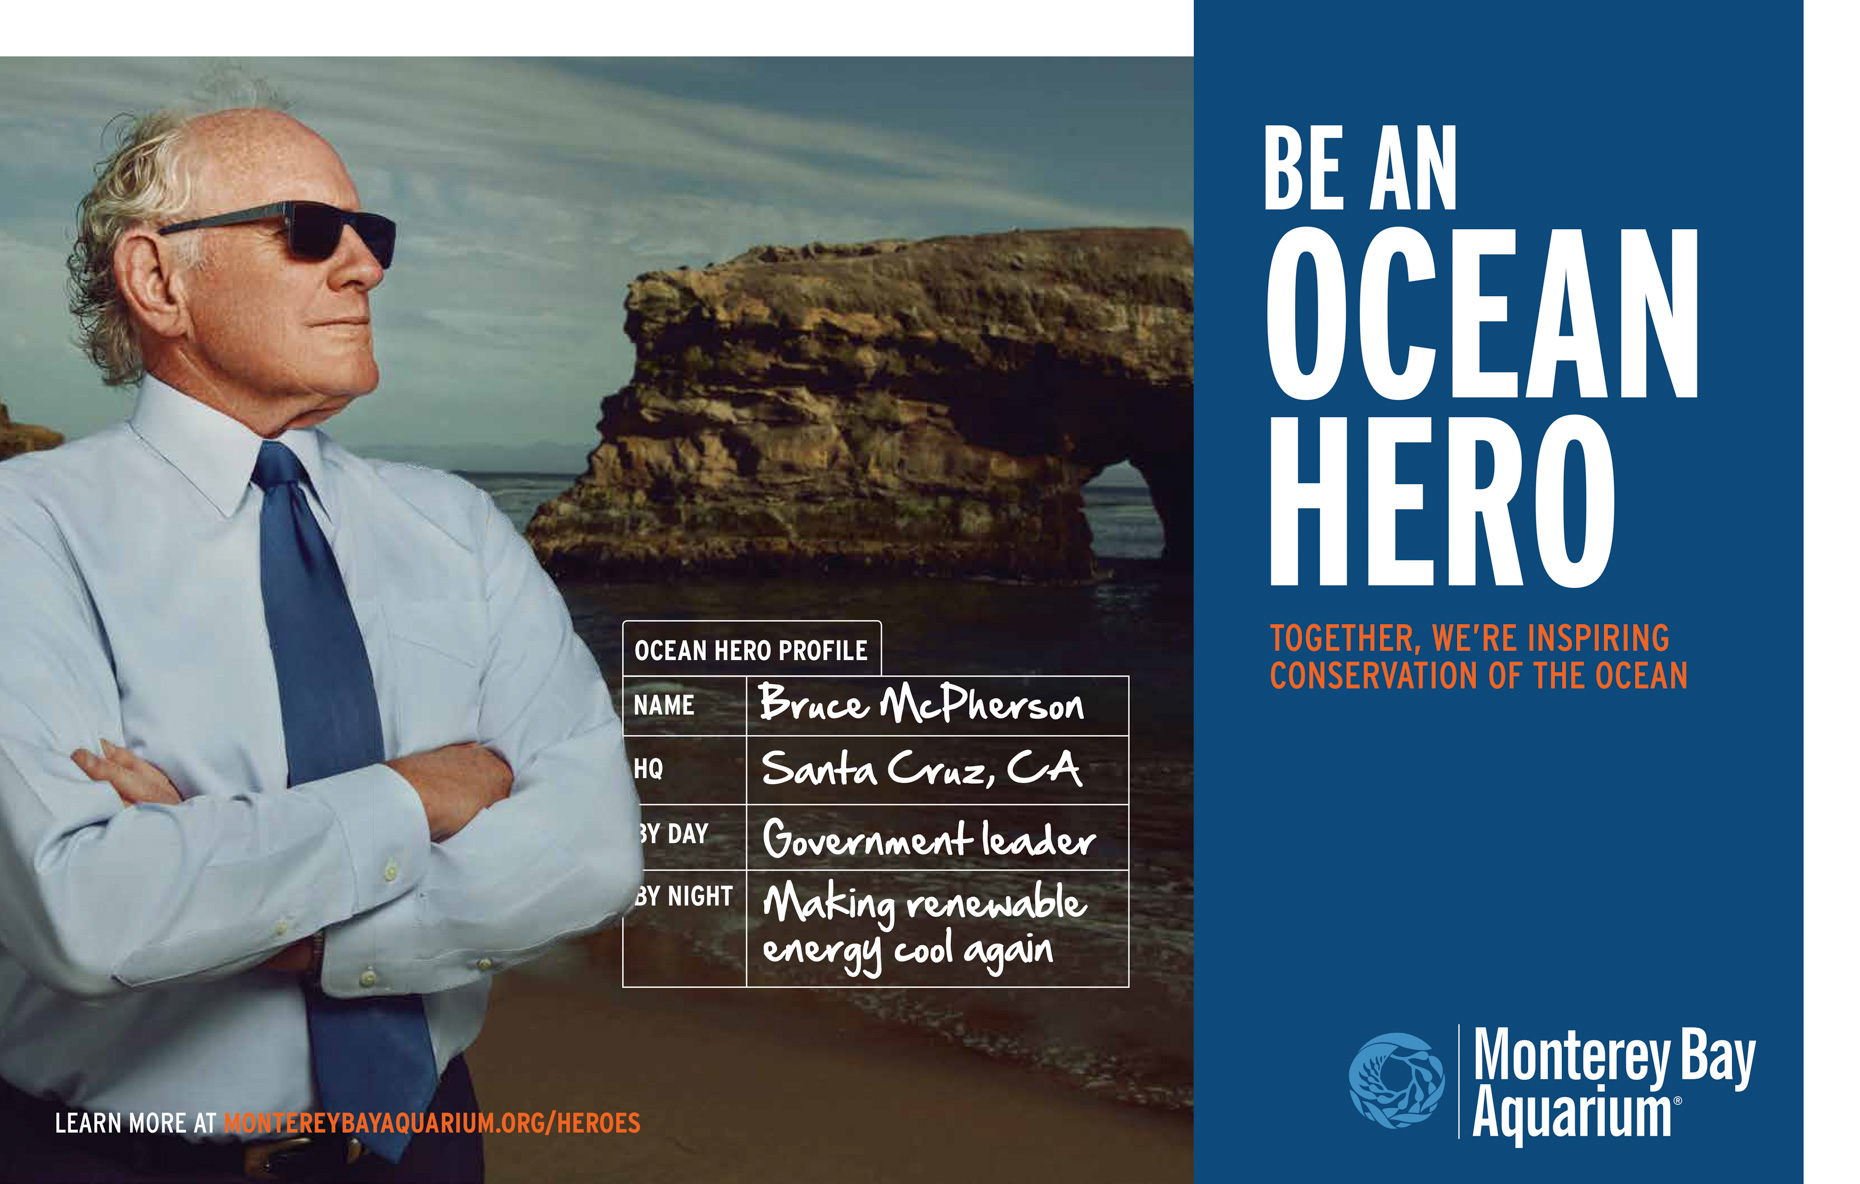 Kremer Johnson - Advertising Photographer Los Angeles - Monterey Bay Aquarium Campaign